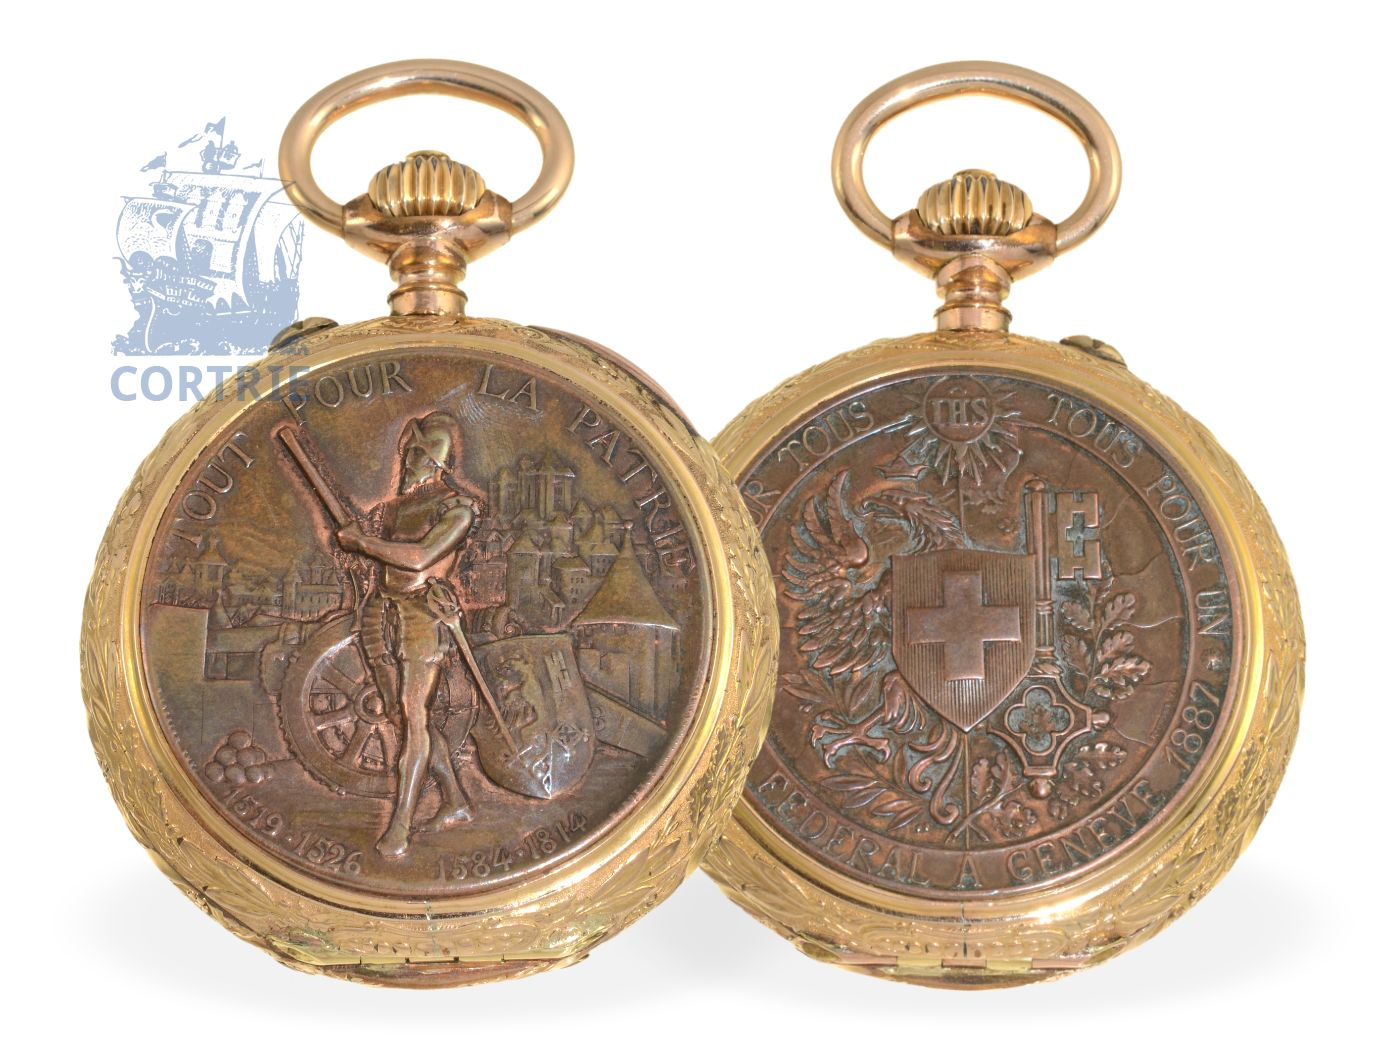 Pocket watch: extremely rare and early marksmen watch Tir Federal a Geneve 1887, Ankerchronometer F. Perrenoud Geneve 1887-